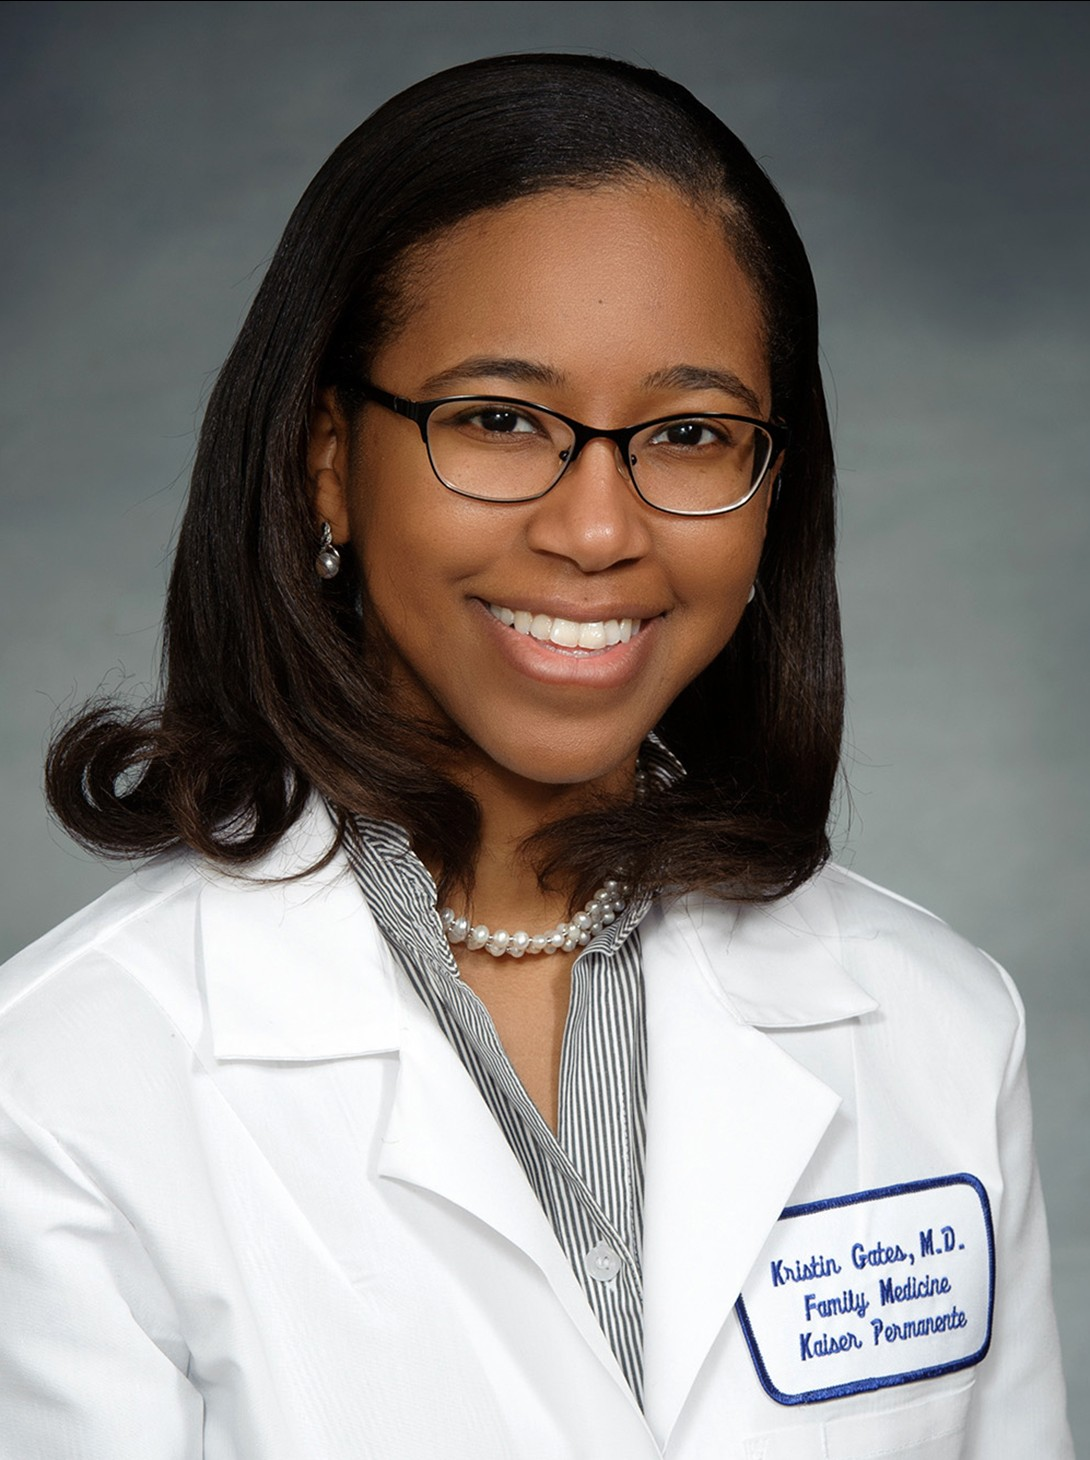 Portrait of a female African American doctor, wearing a white coat